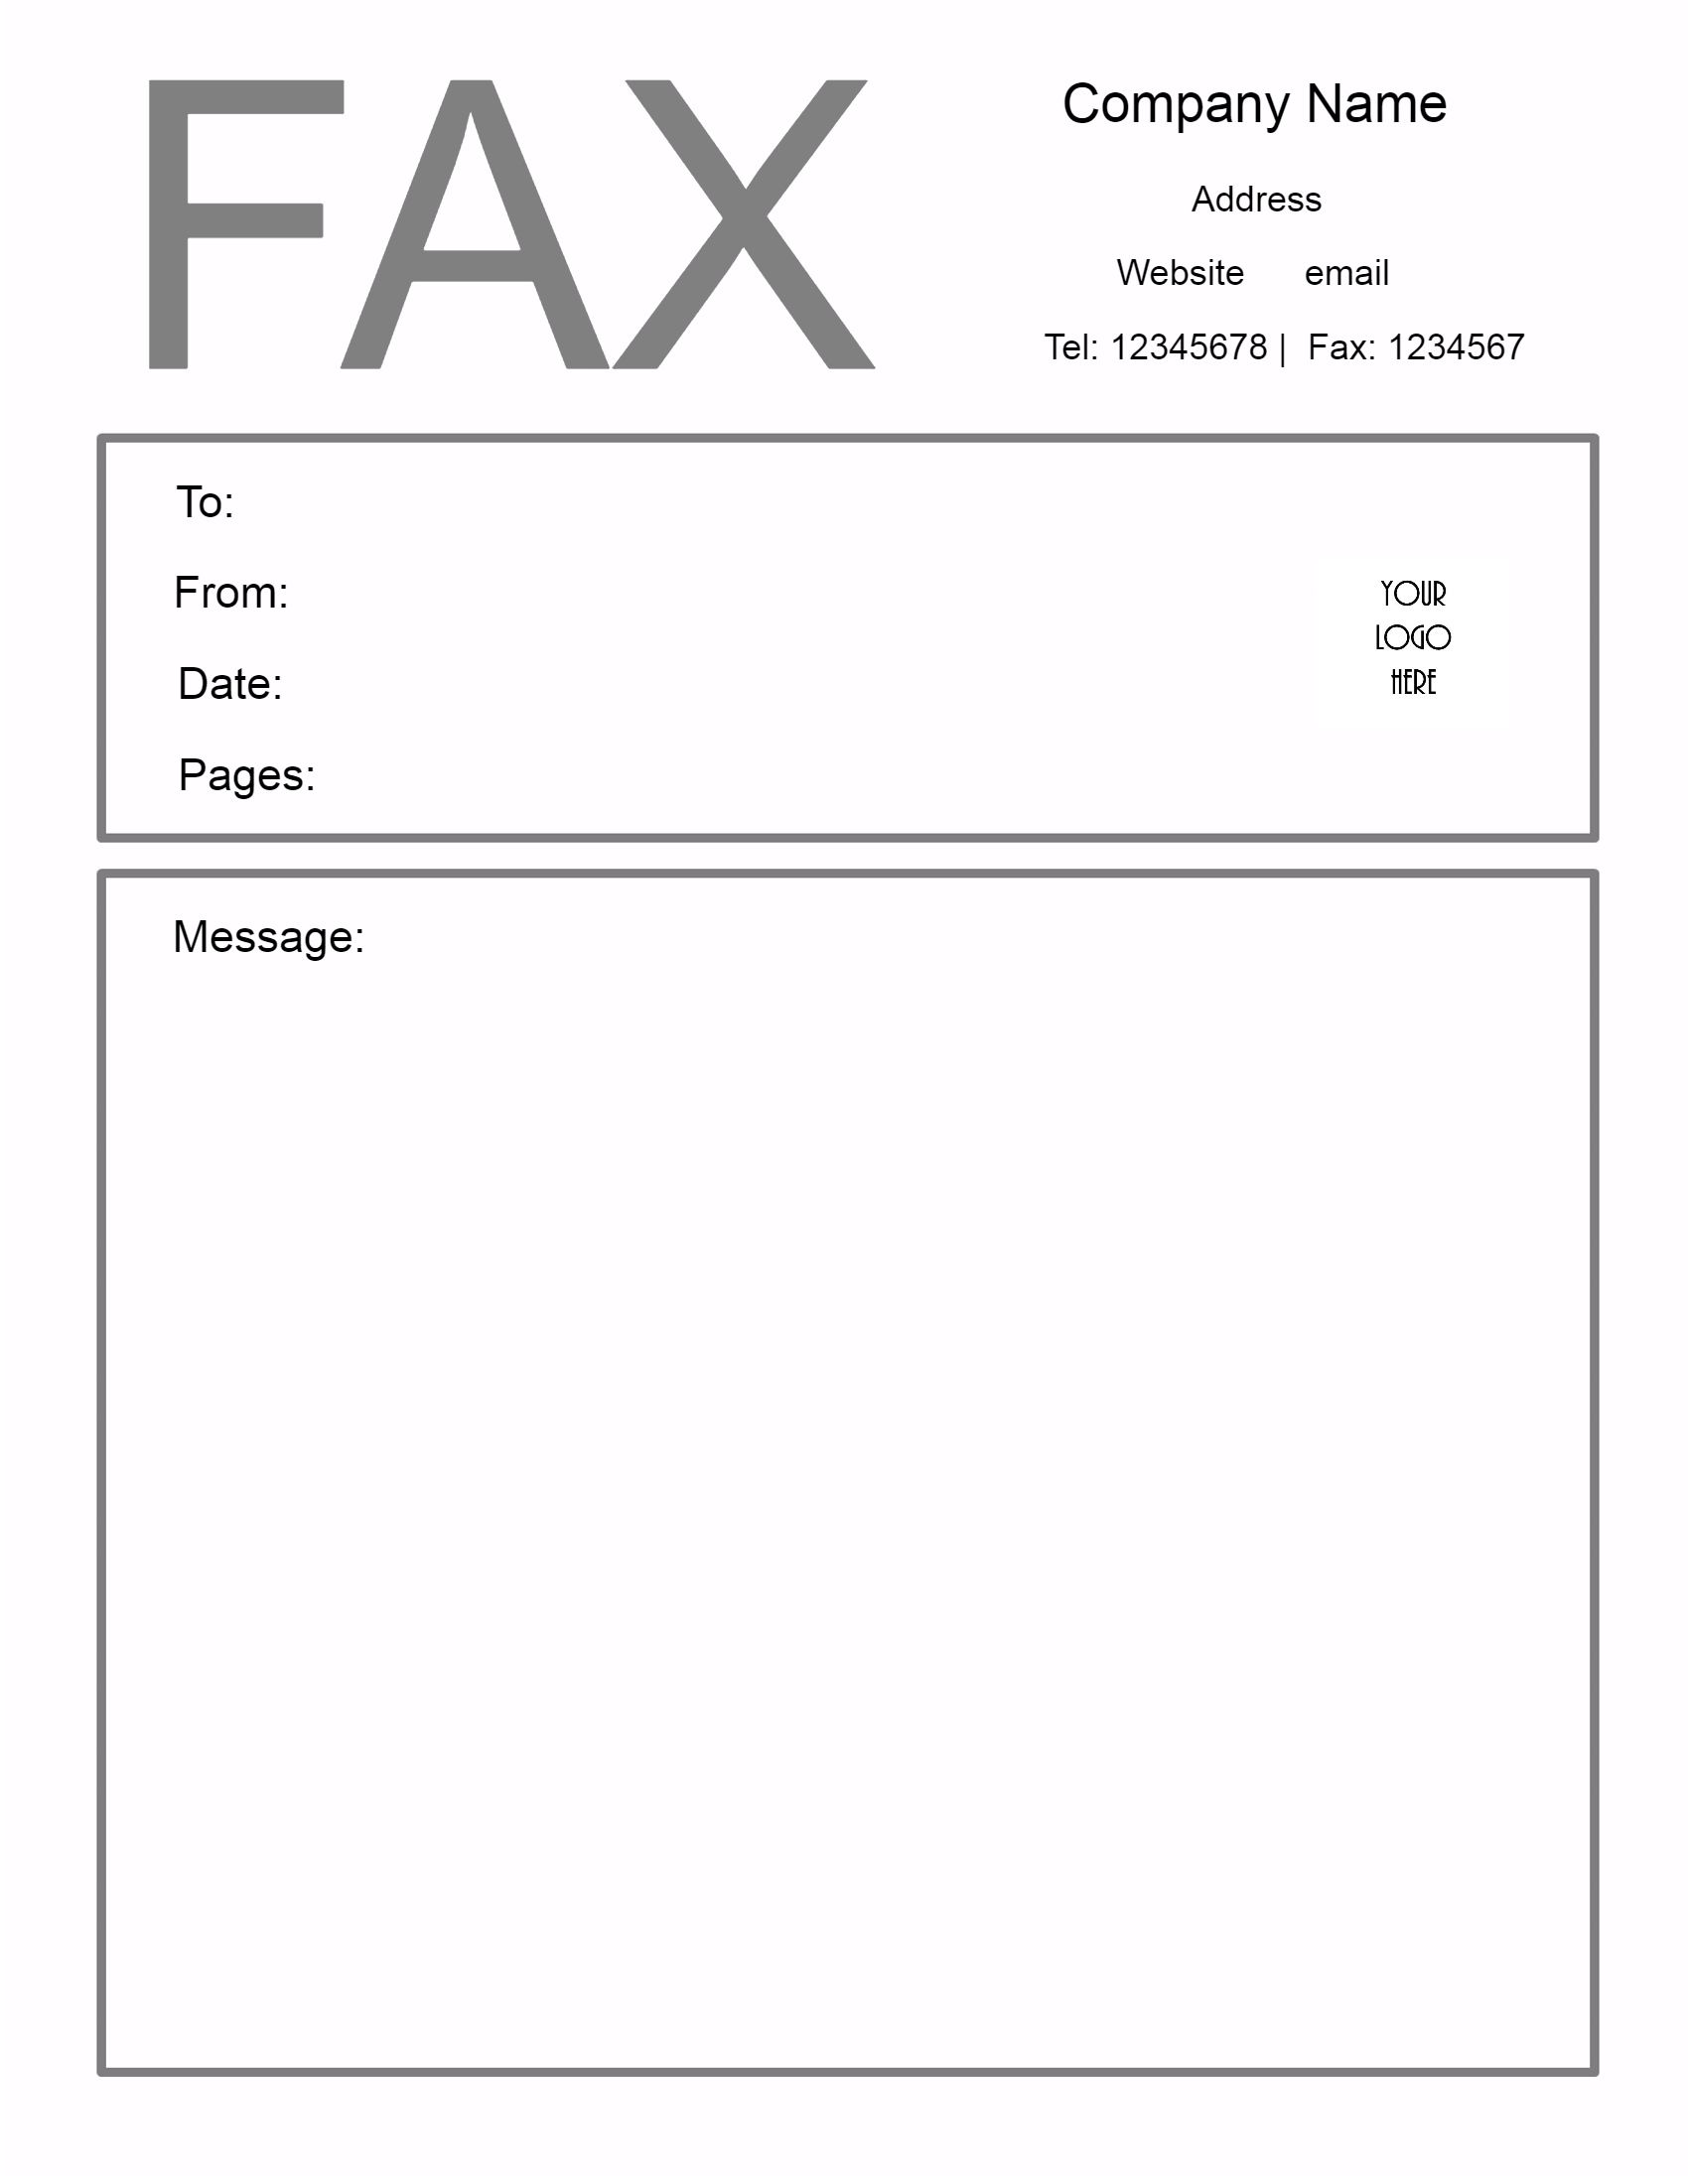 free fax cover sheet template - 28 images - 6 fax cover sheet ...